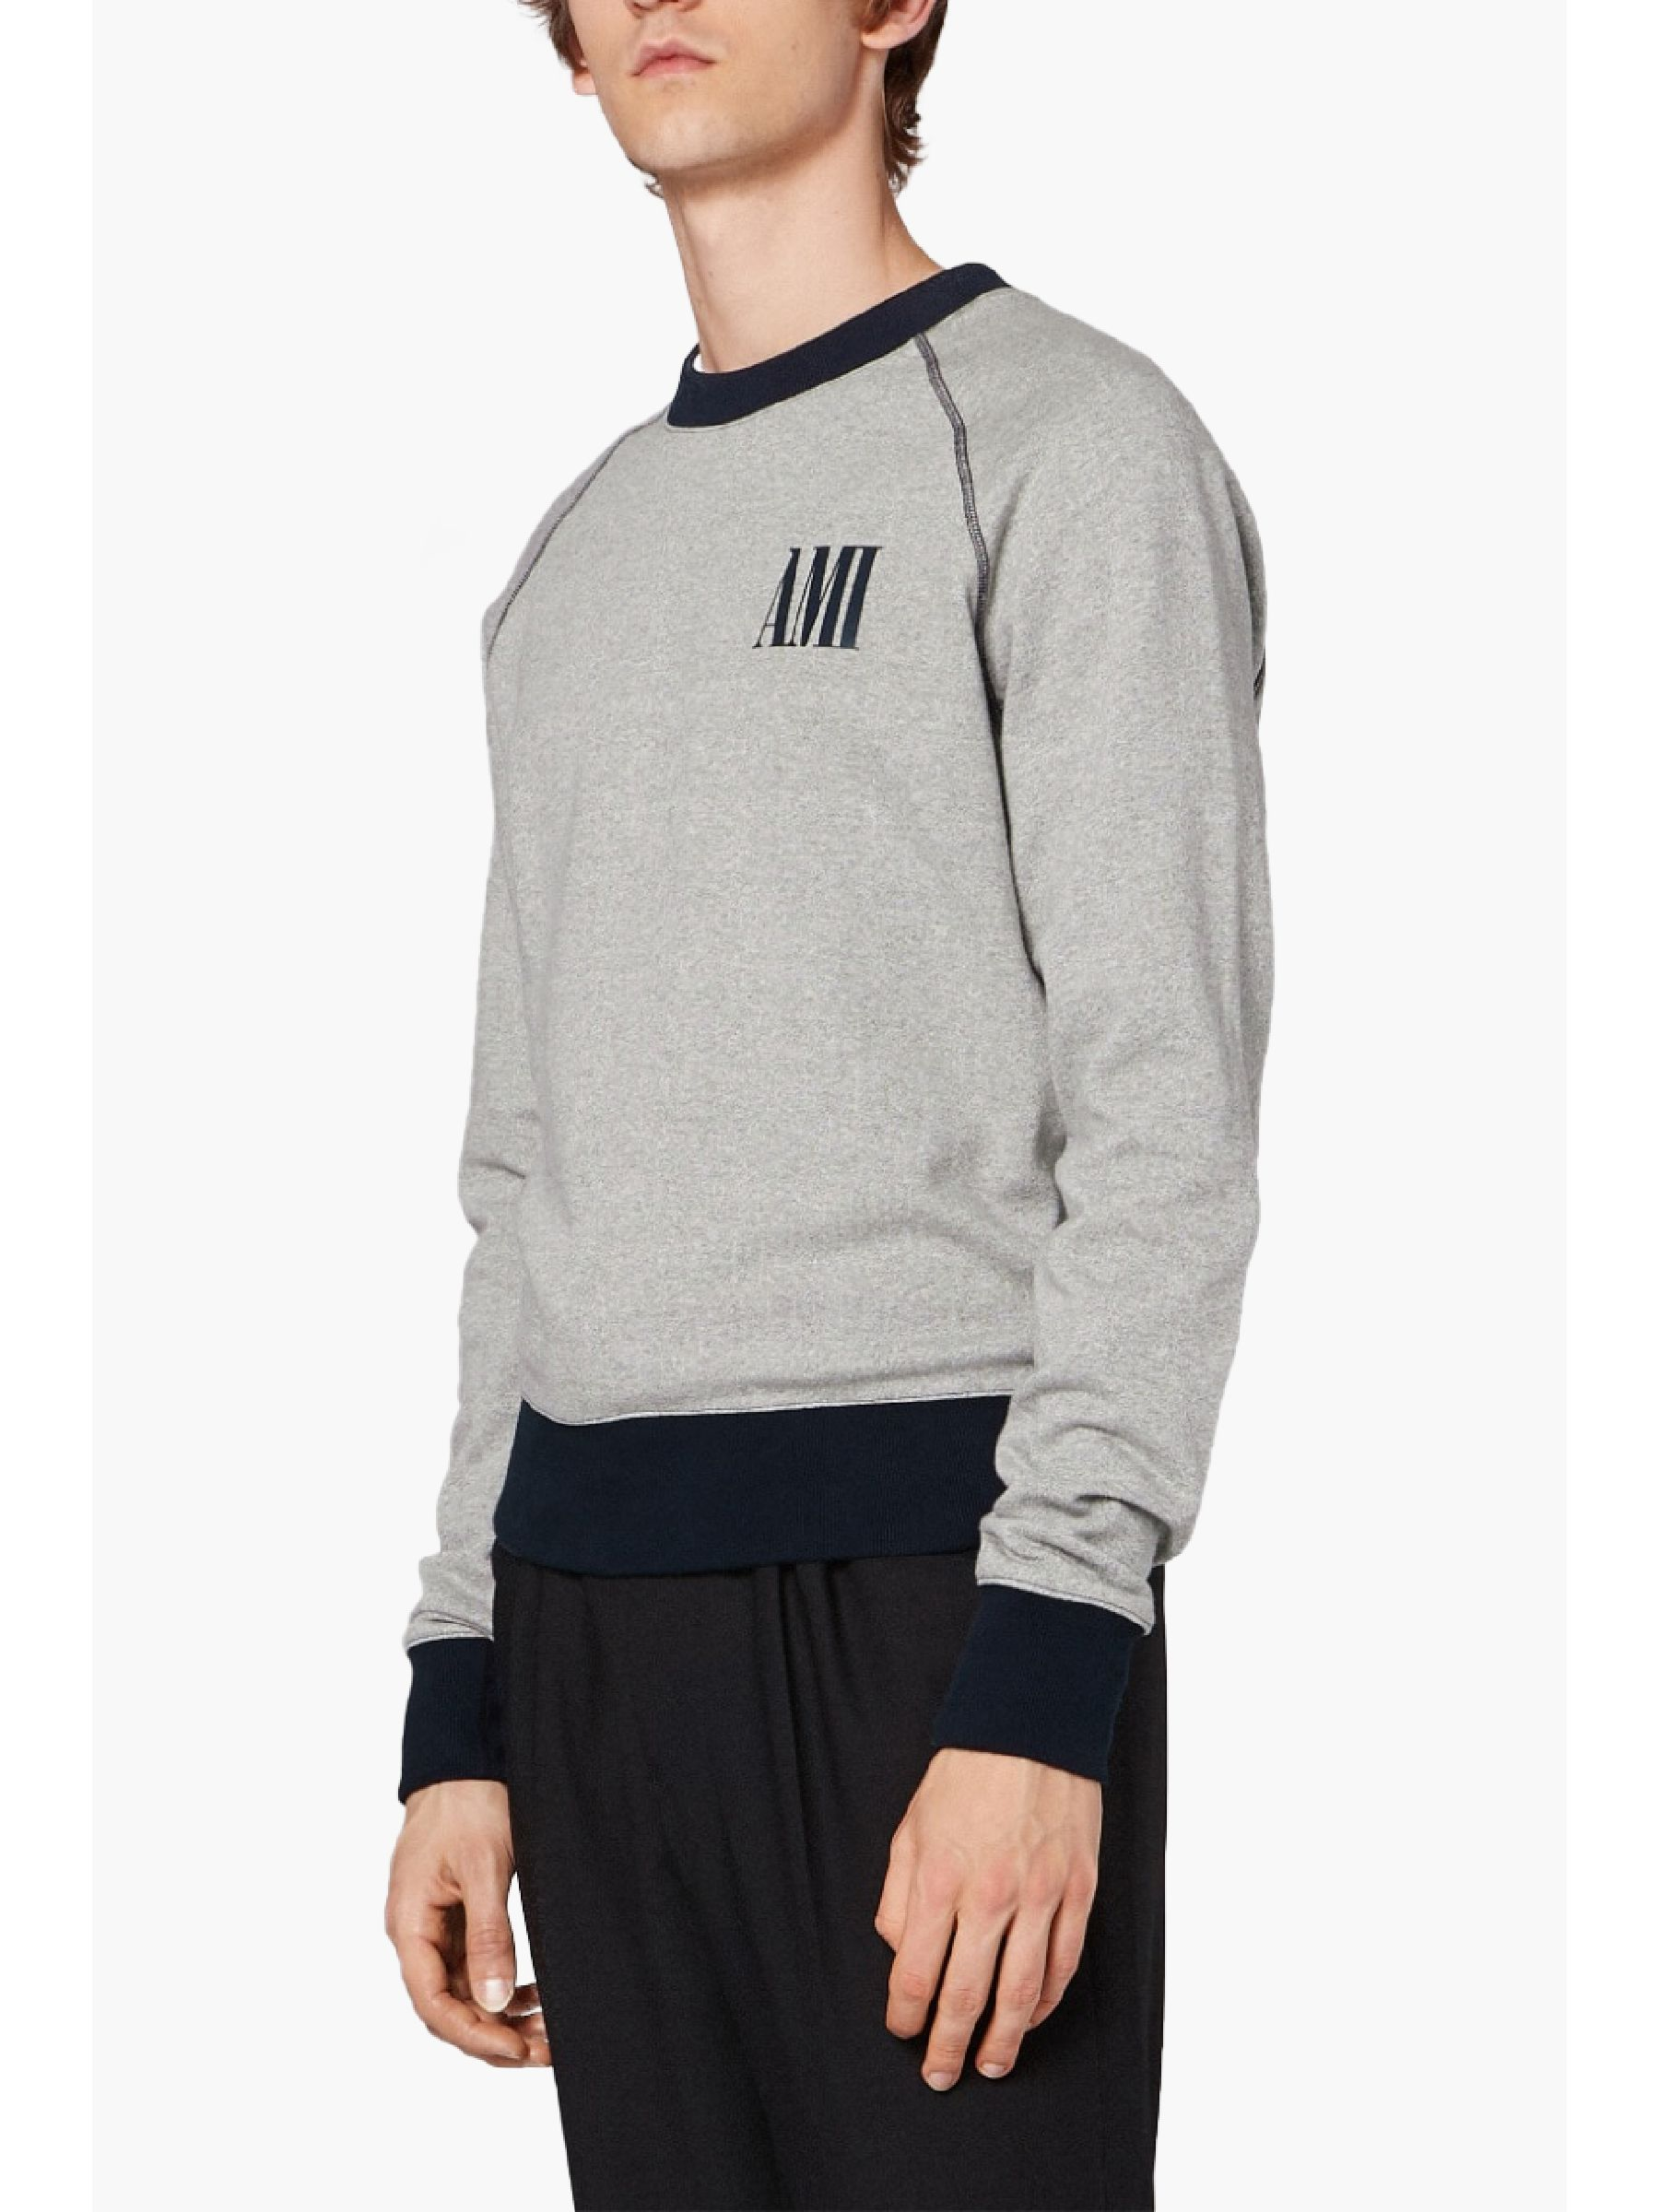 ami_paris_crewneck_bicolor_sweatshirt_with_ami_print_111437795_c.jpg